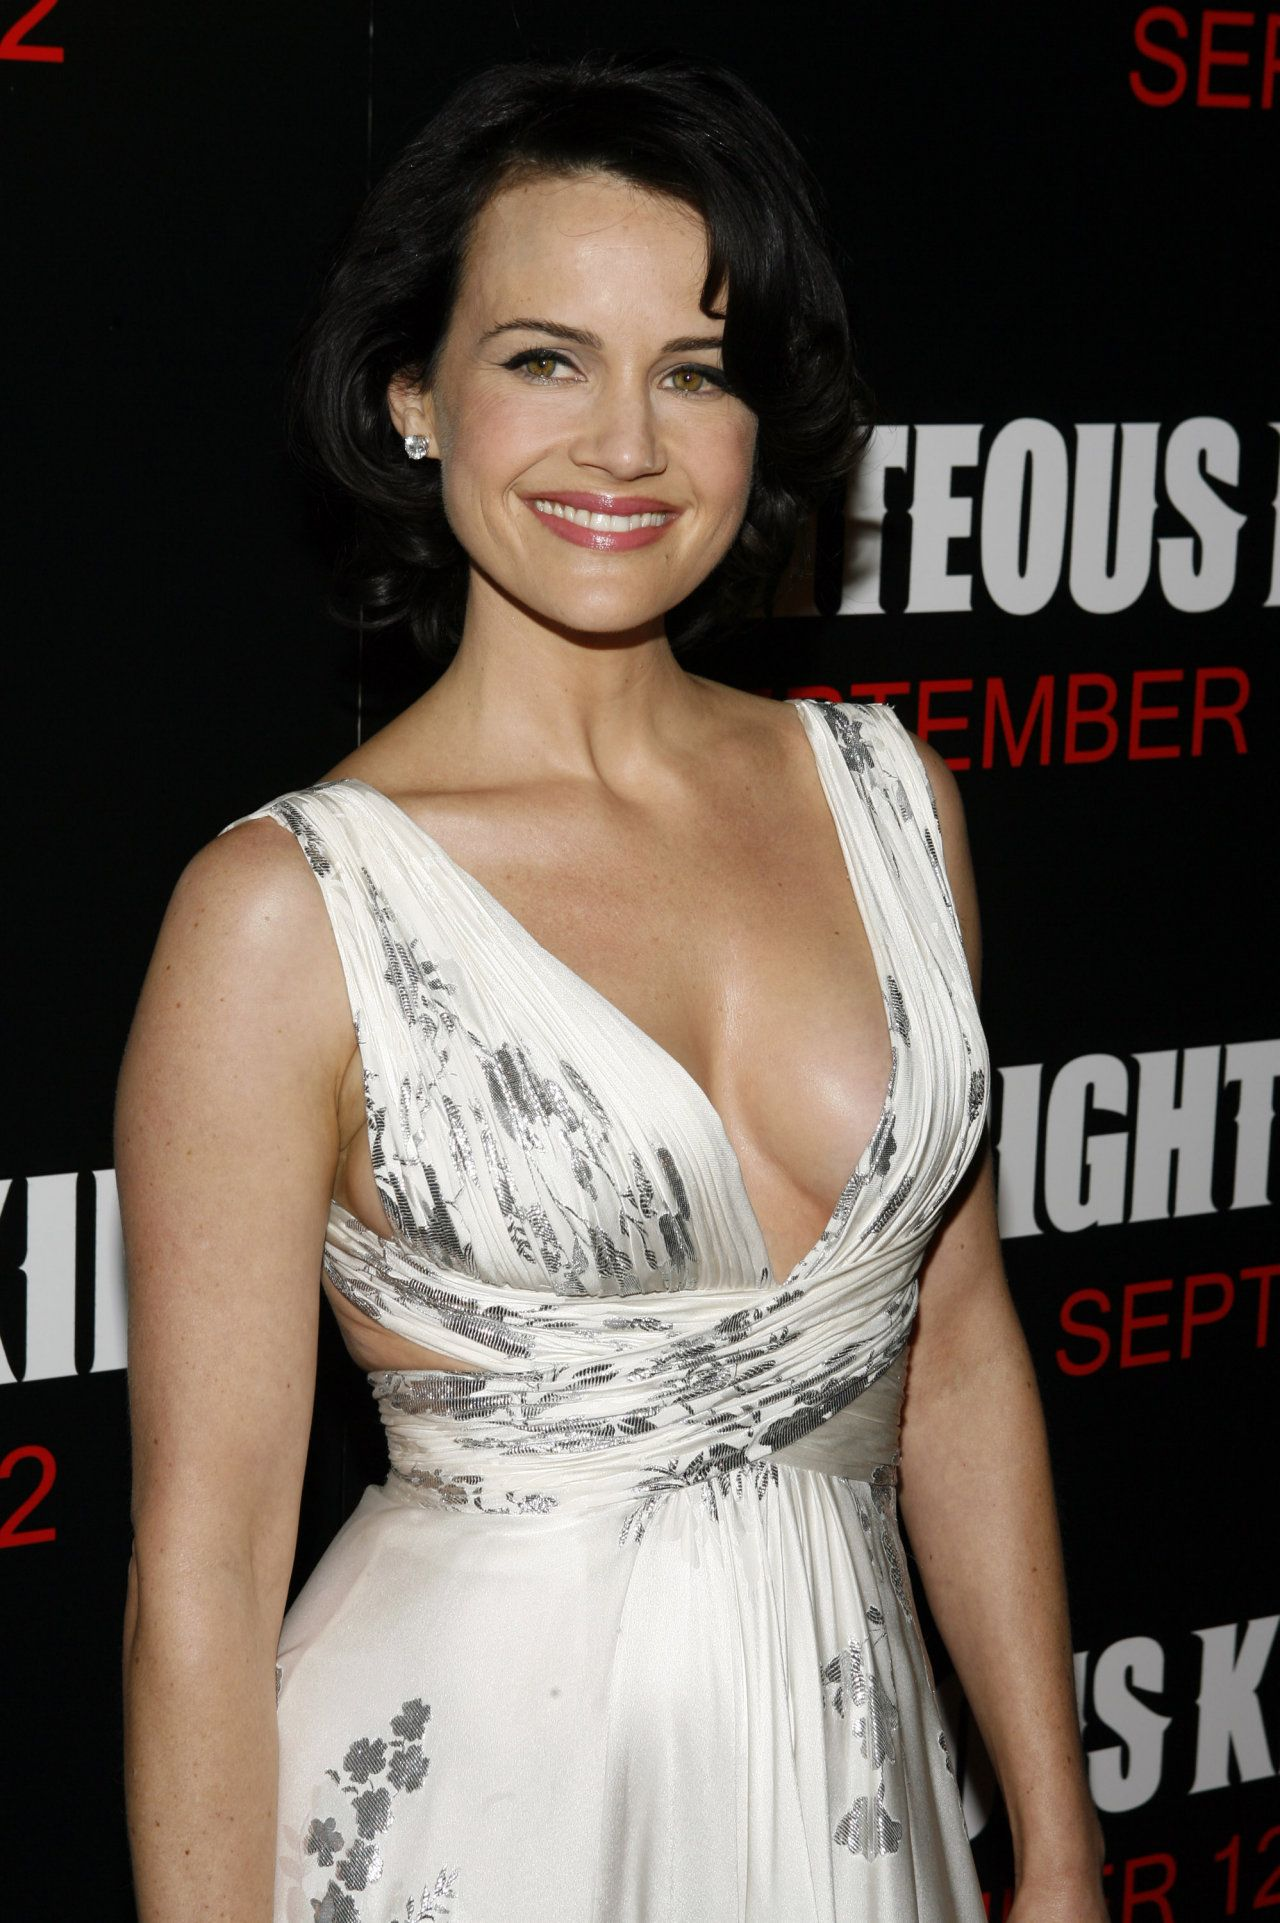 Celebrity Carla Gugino nudes (86 foto and video), Topless, Hot, Feet, lingerie 2018